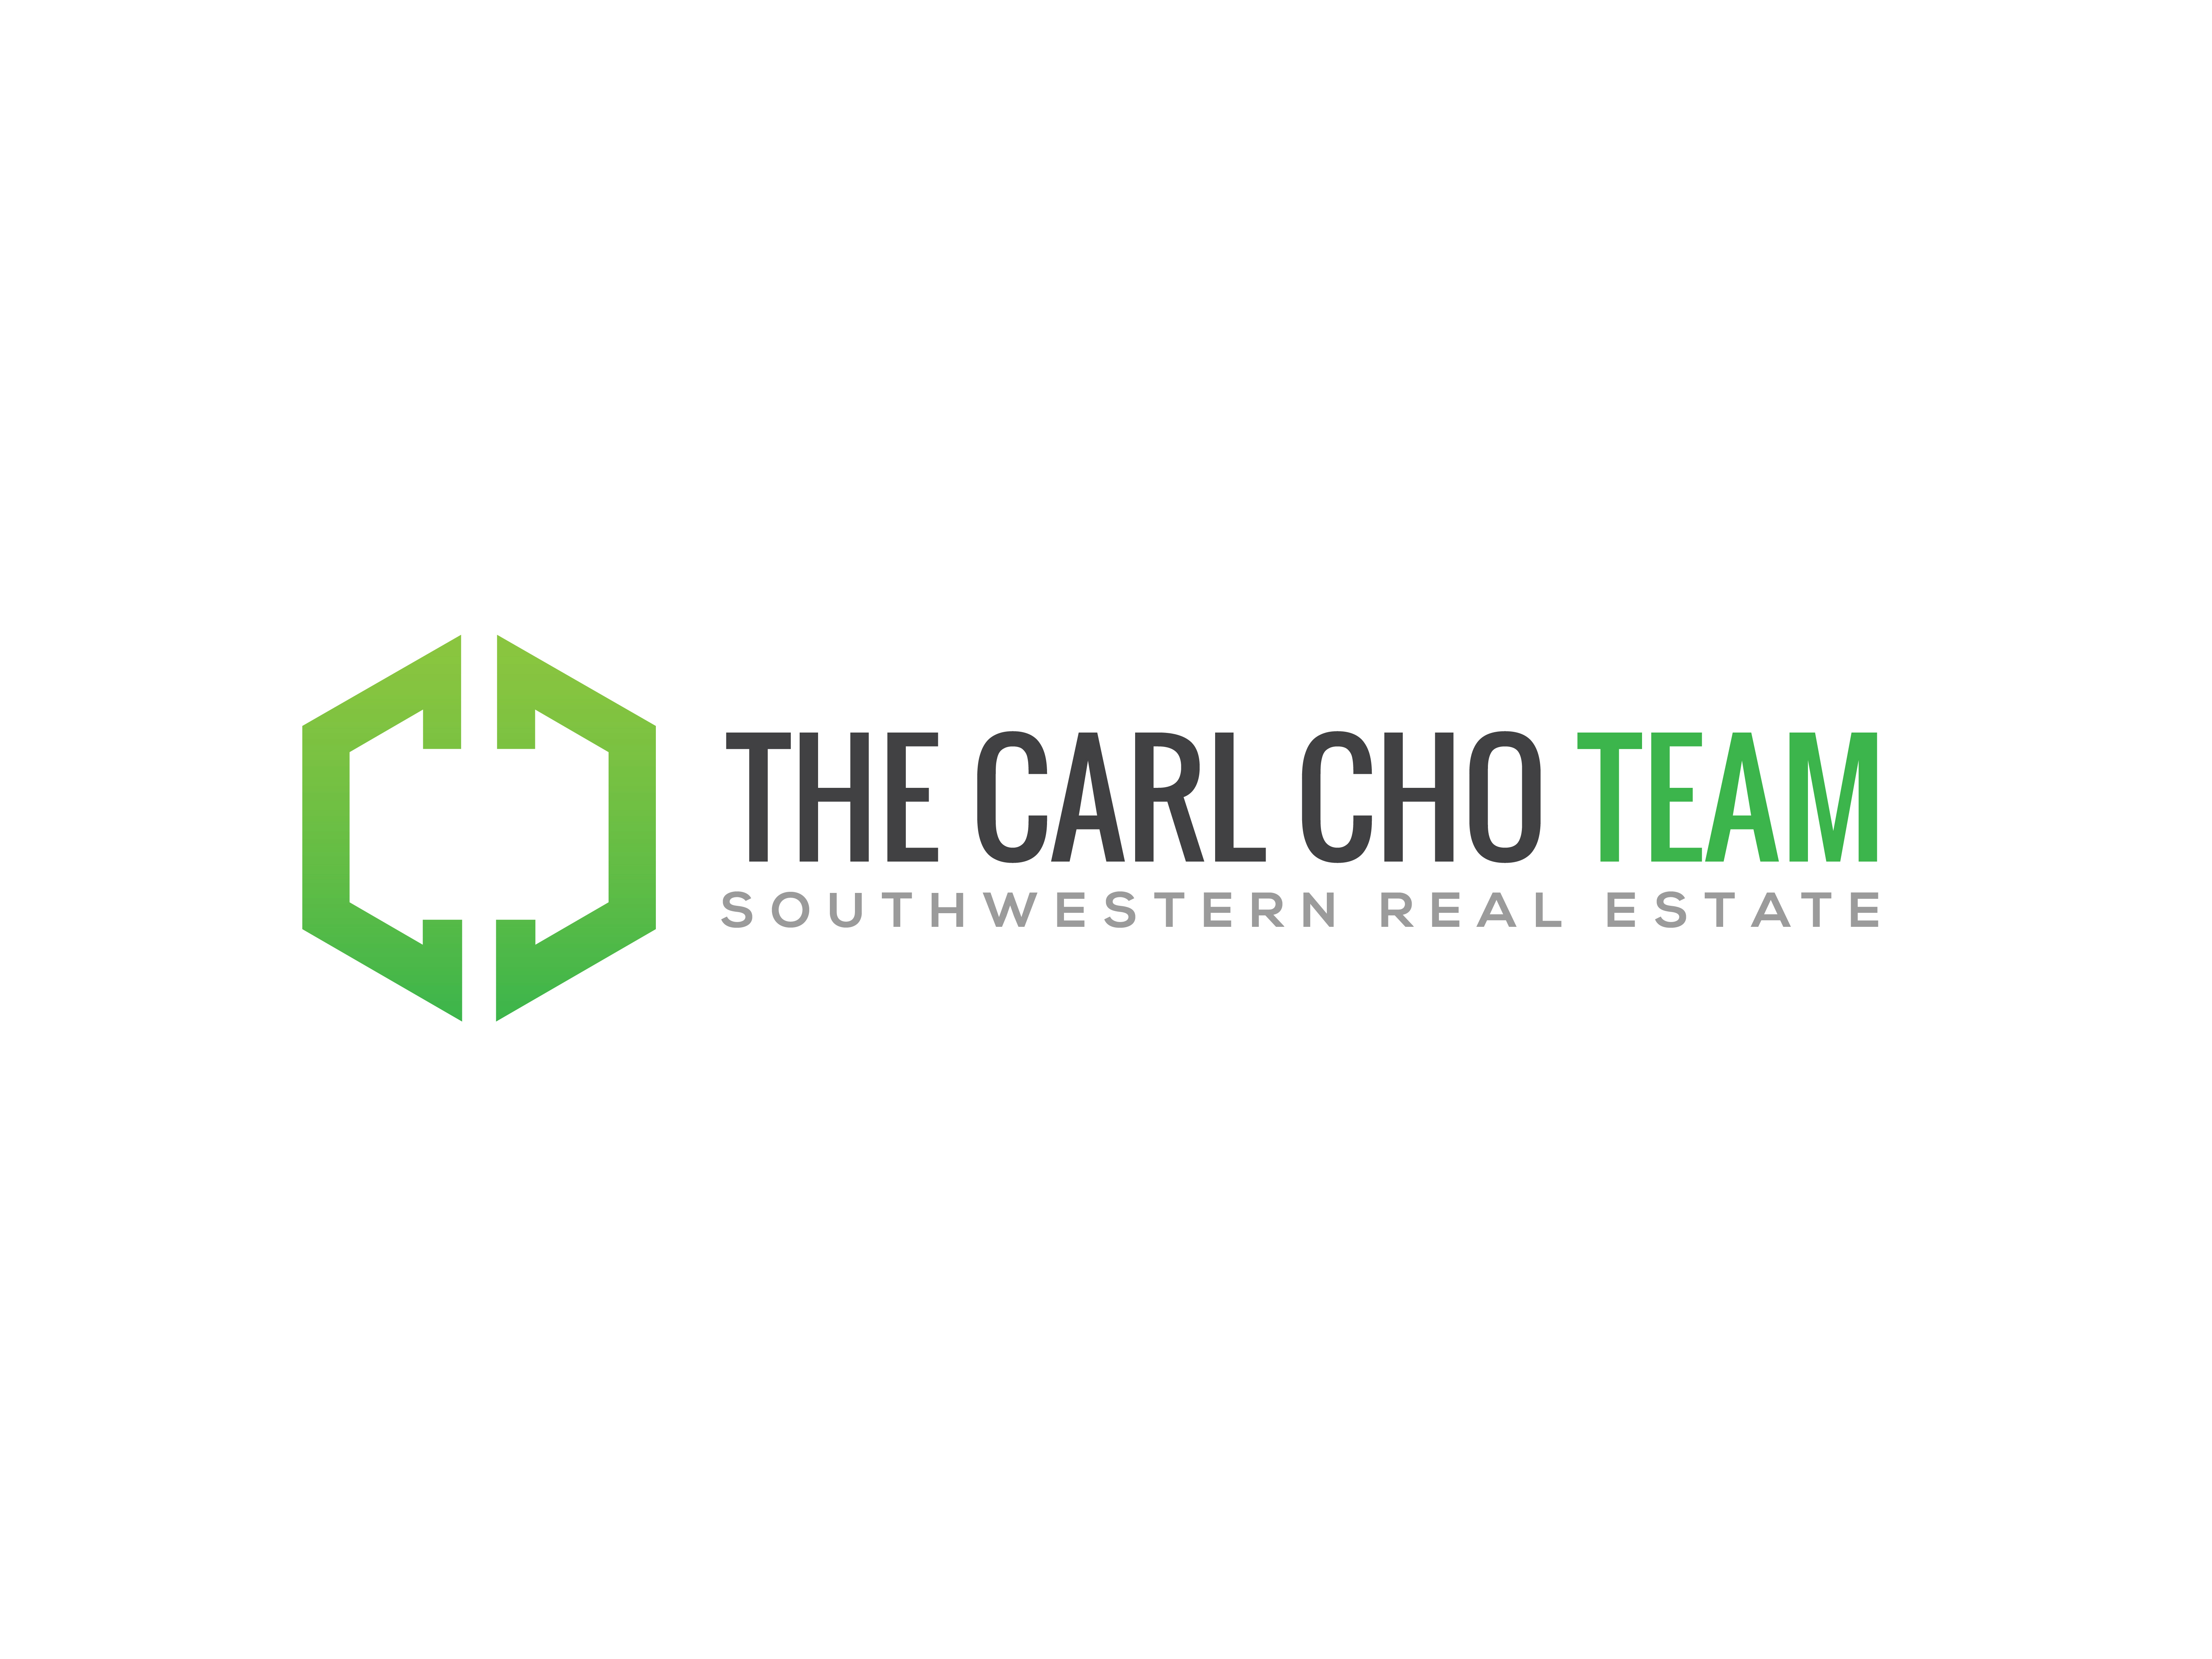 The Carl Cho Team Southwestern Real Estate